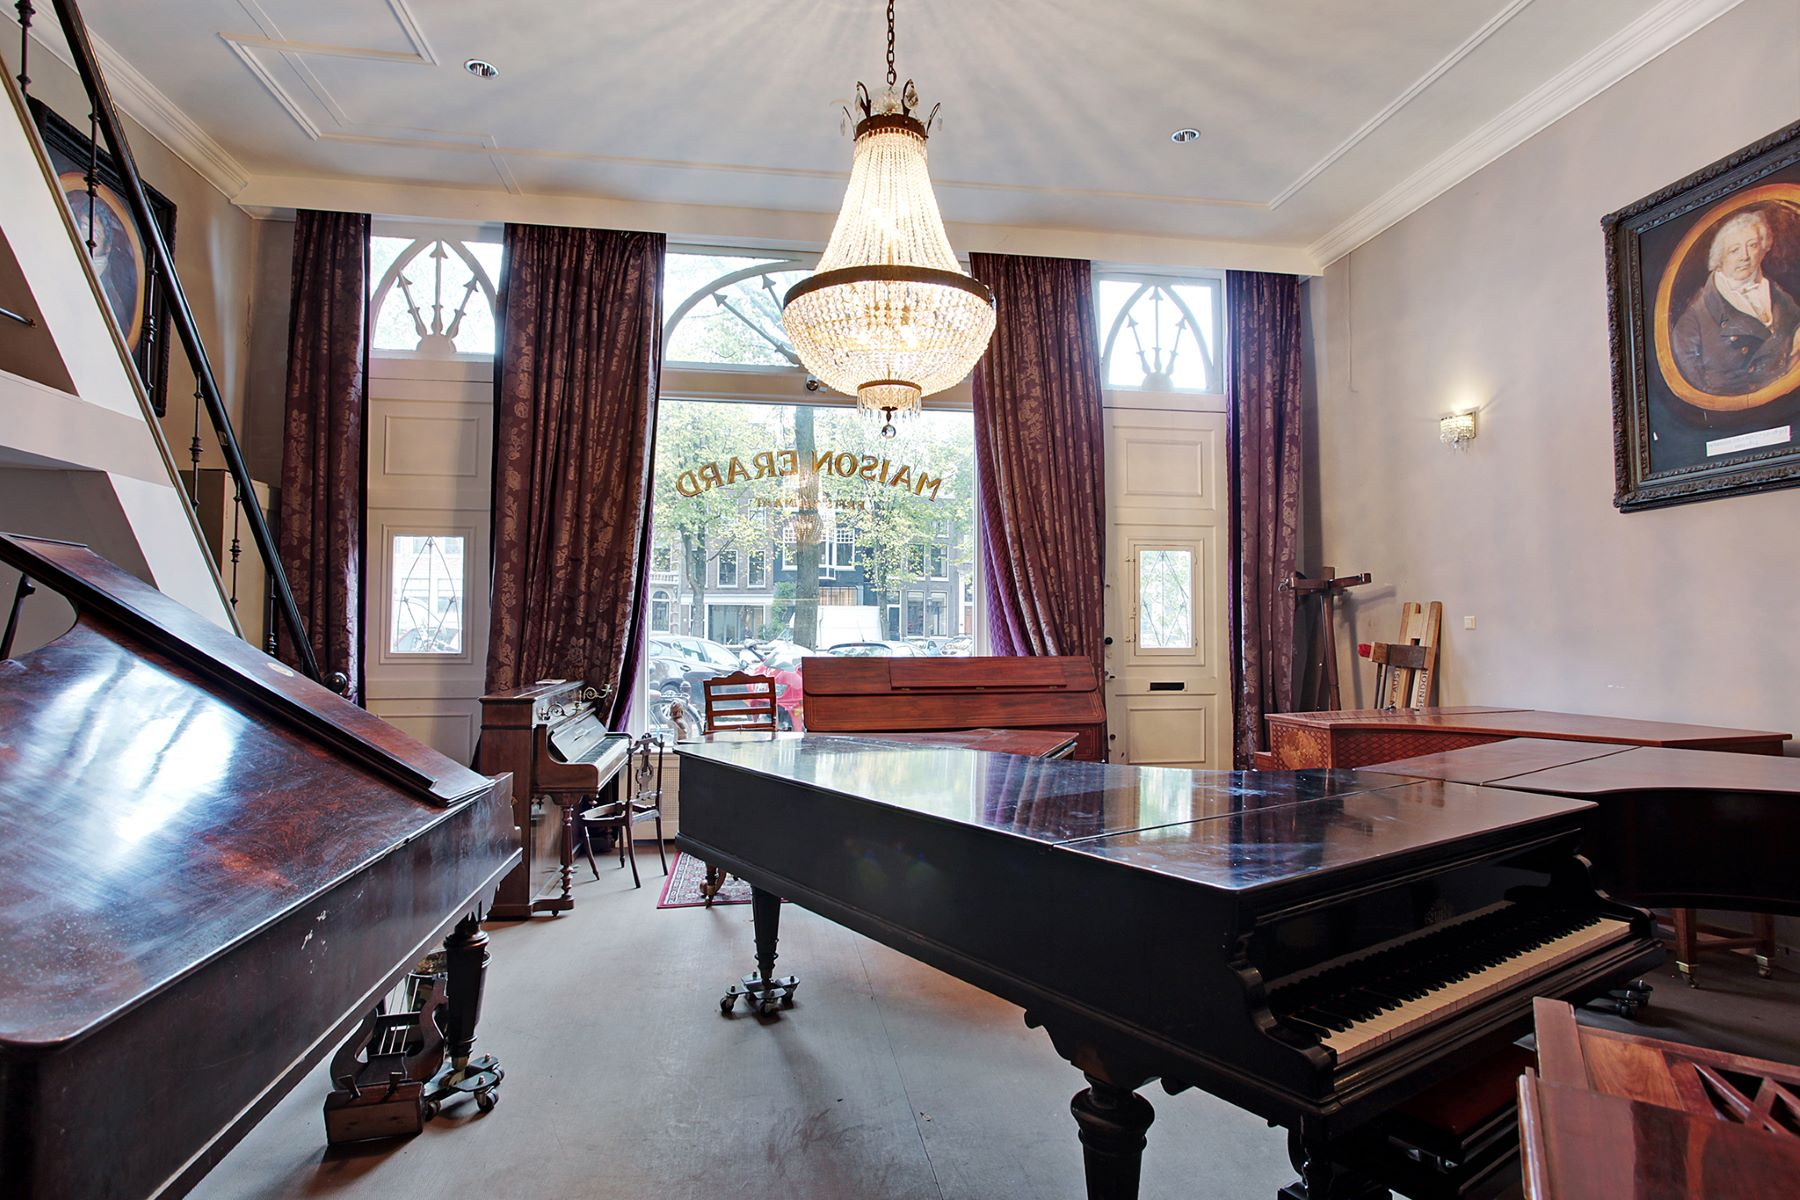 Townhouse for Sale at Canal House Keizersgracht Amsterdam Keizersgracht 91 Amsterdam, North Holland, 1015 CG Netherlands